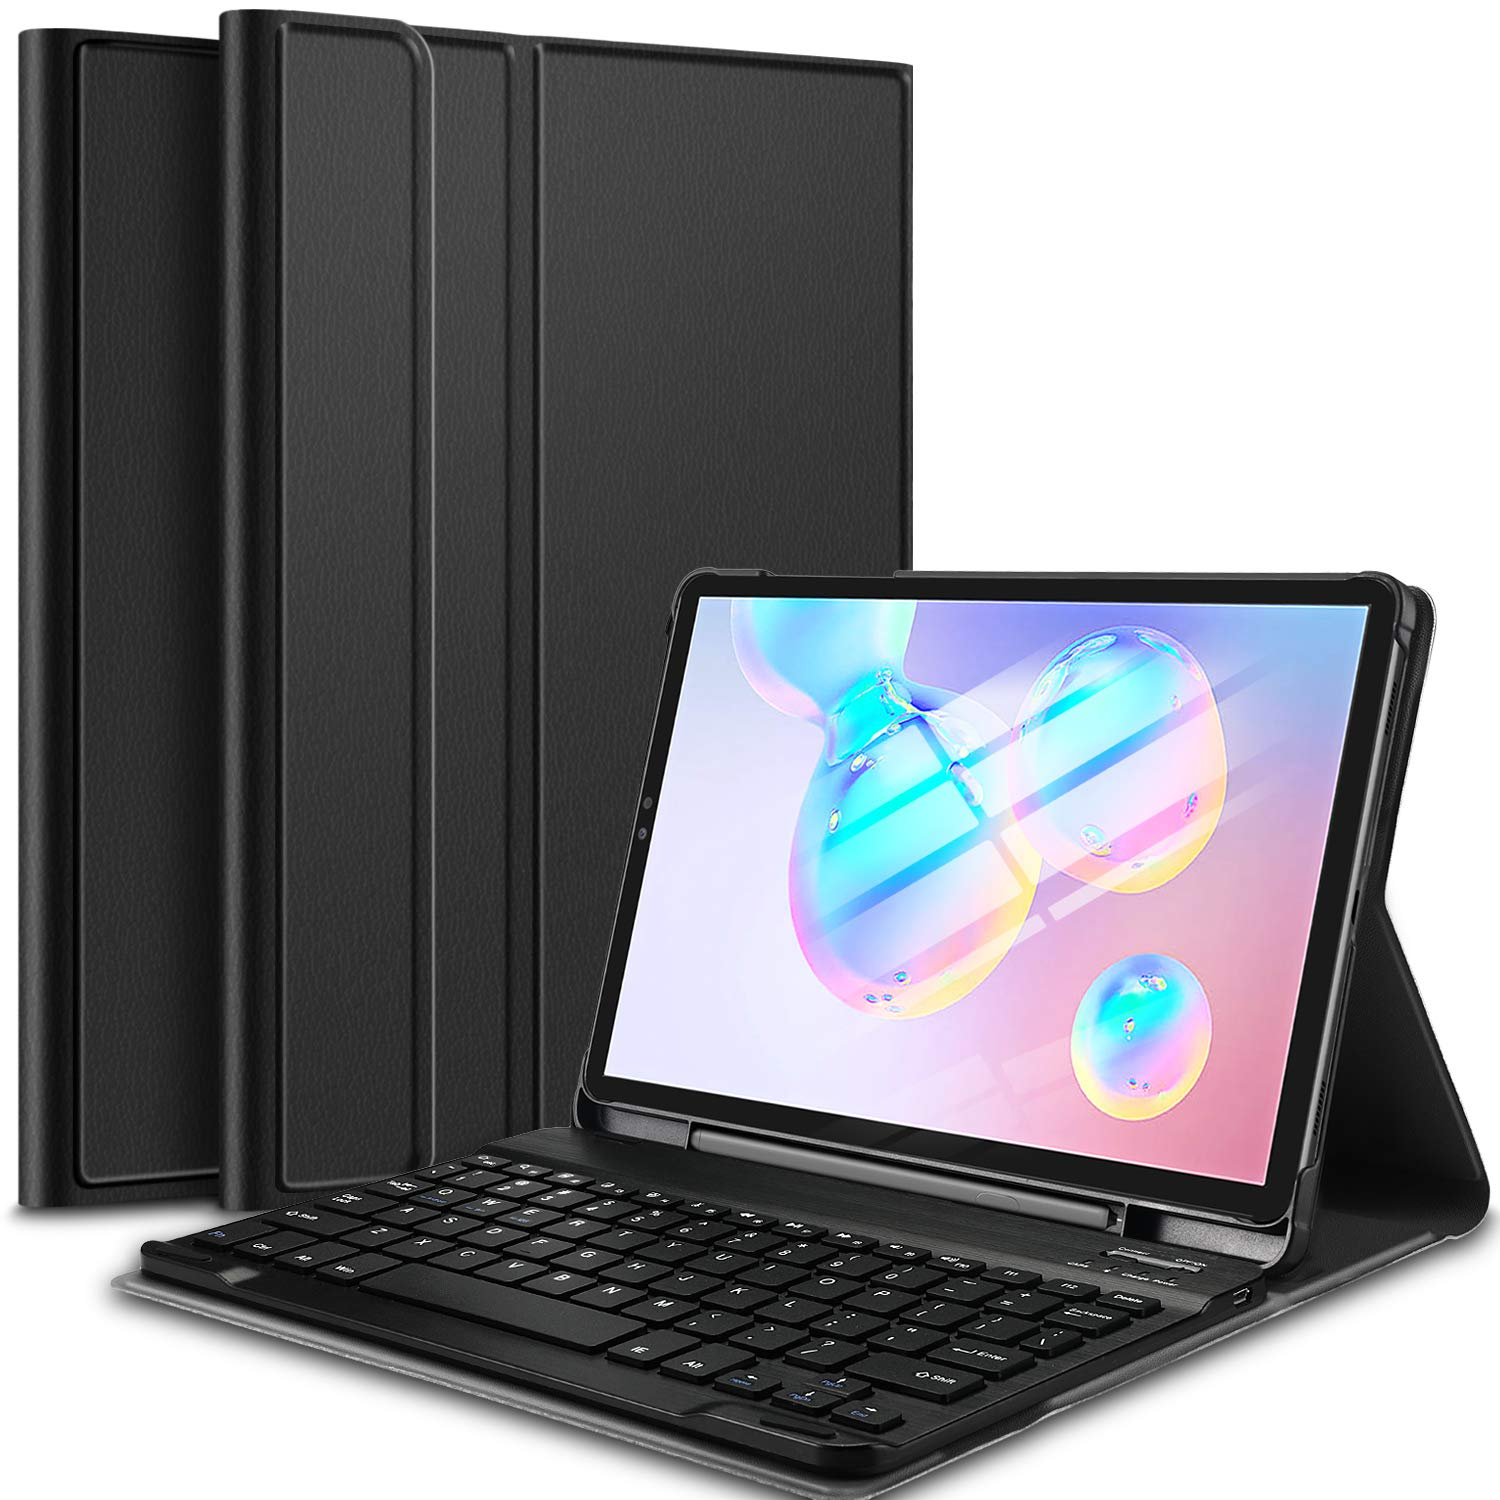 IVSO Keyboard Case for Samsung Galaxy Tab S6 10.5 (QWERTY), Slim PU Case with Detachable Wireless Keyboard for Samsung Galaxy Tab S6 SM-T860/T865 10.5 2019, Black